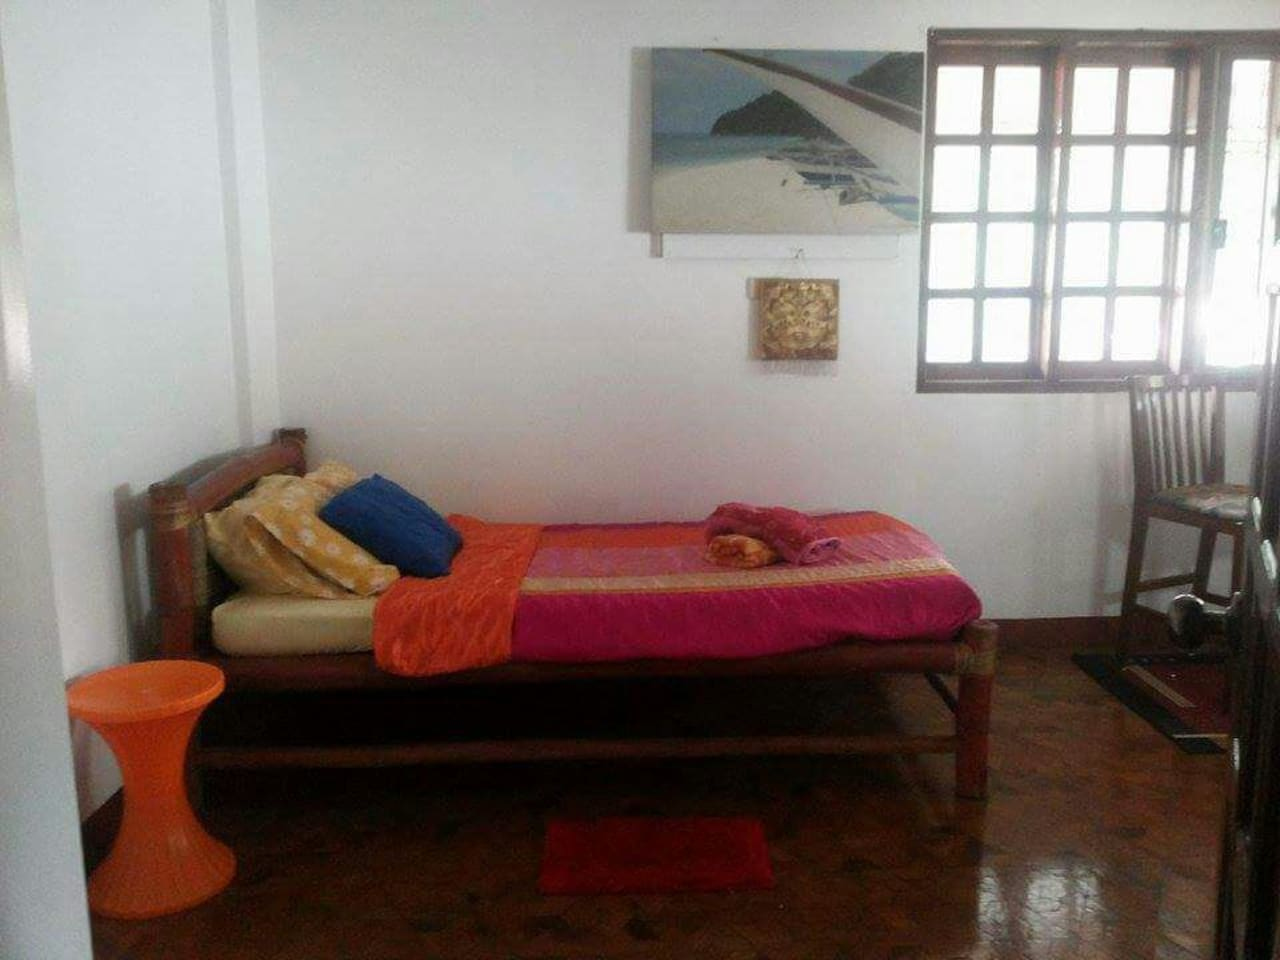 Crib for sale in olongapo - Family Rooms Near Baloy Beach Not Beachfront Bed Breakfasts For Rent In Subic Zambales Philippines